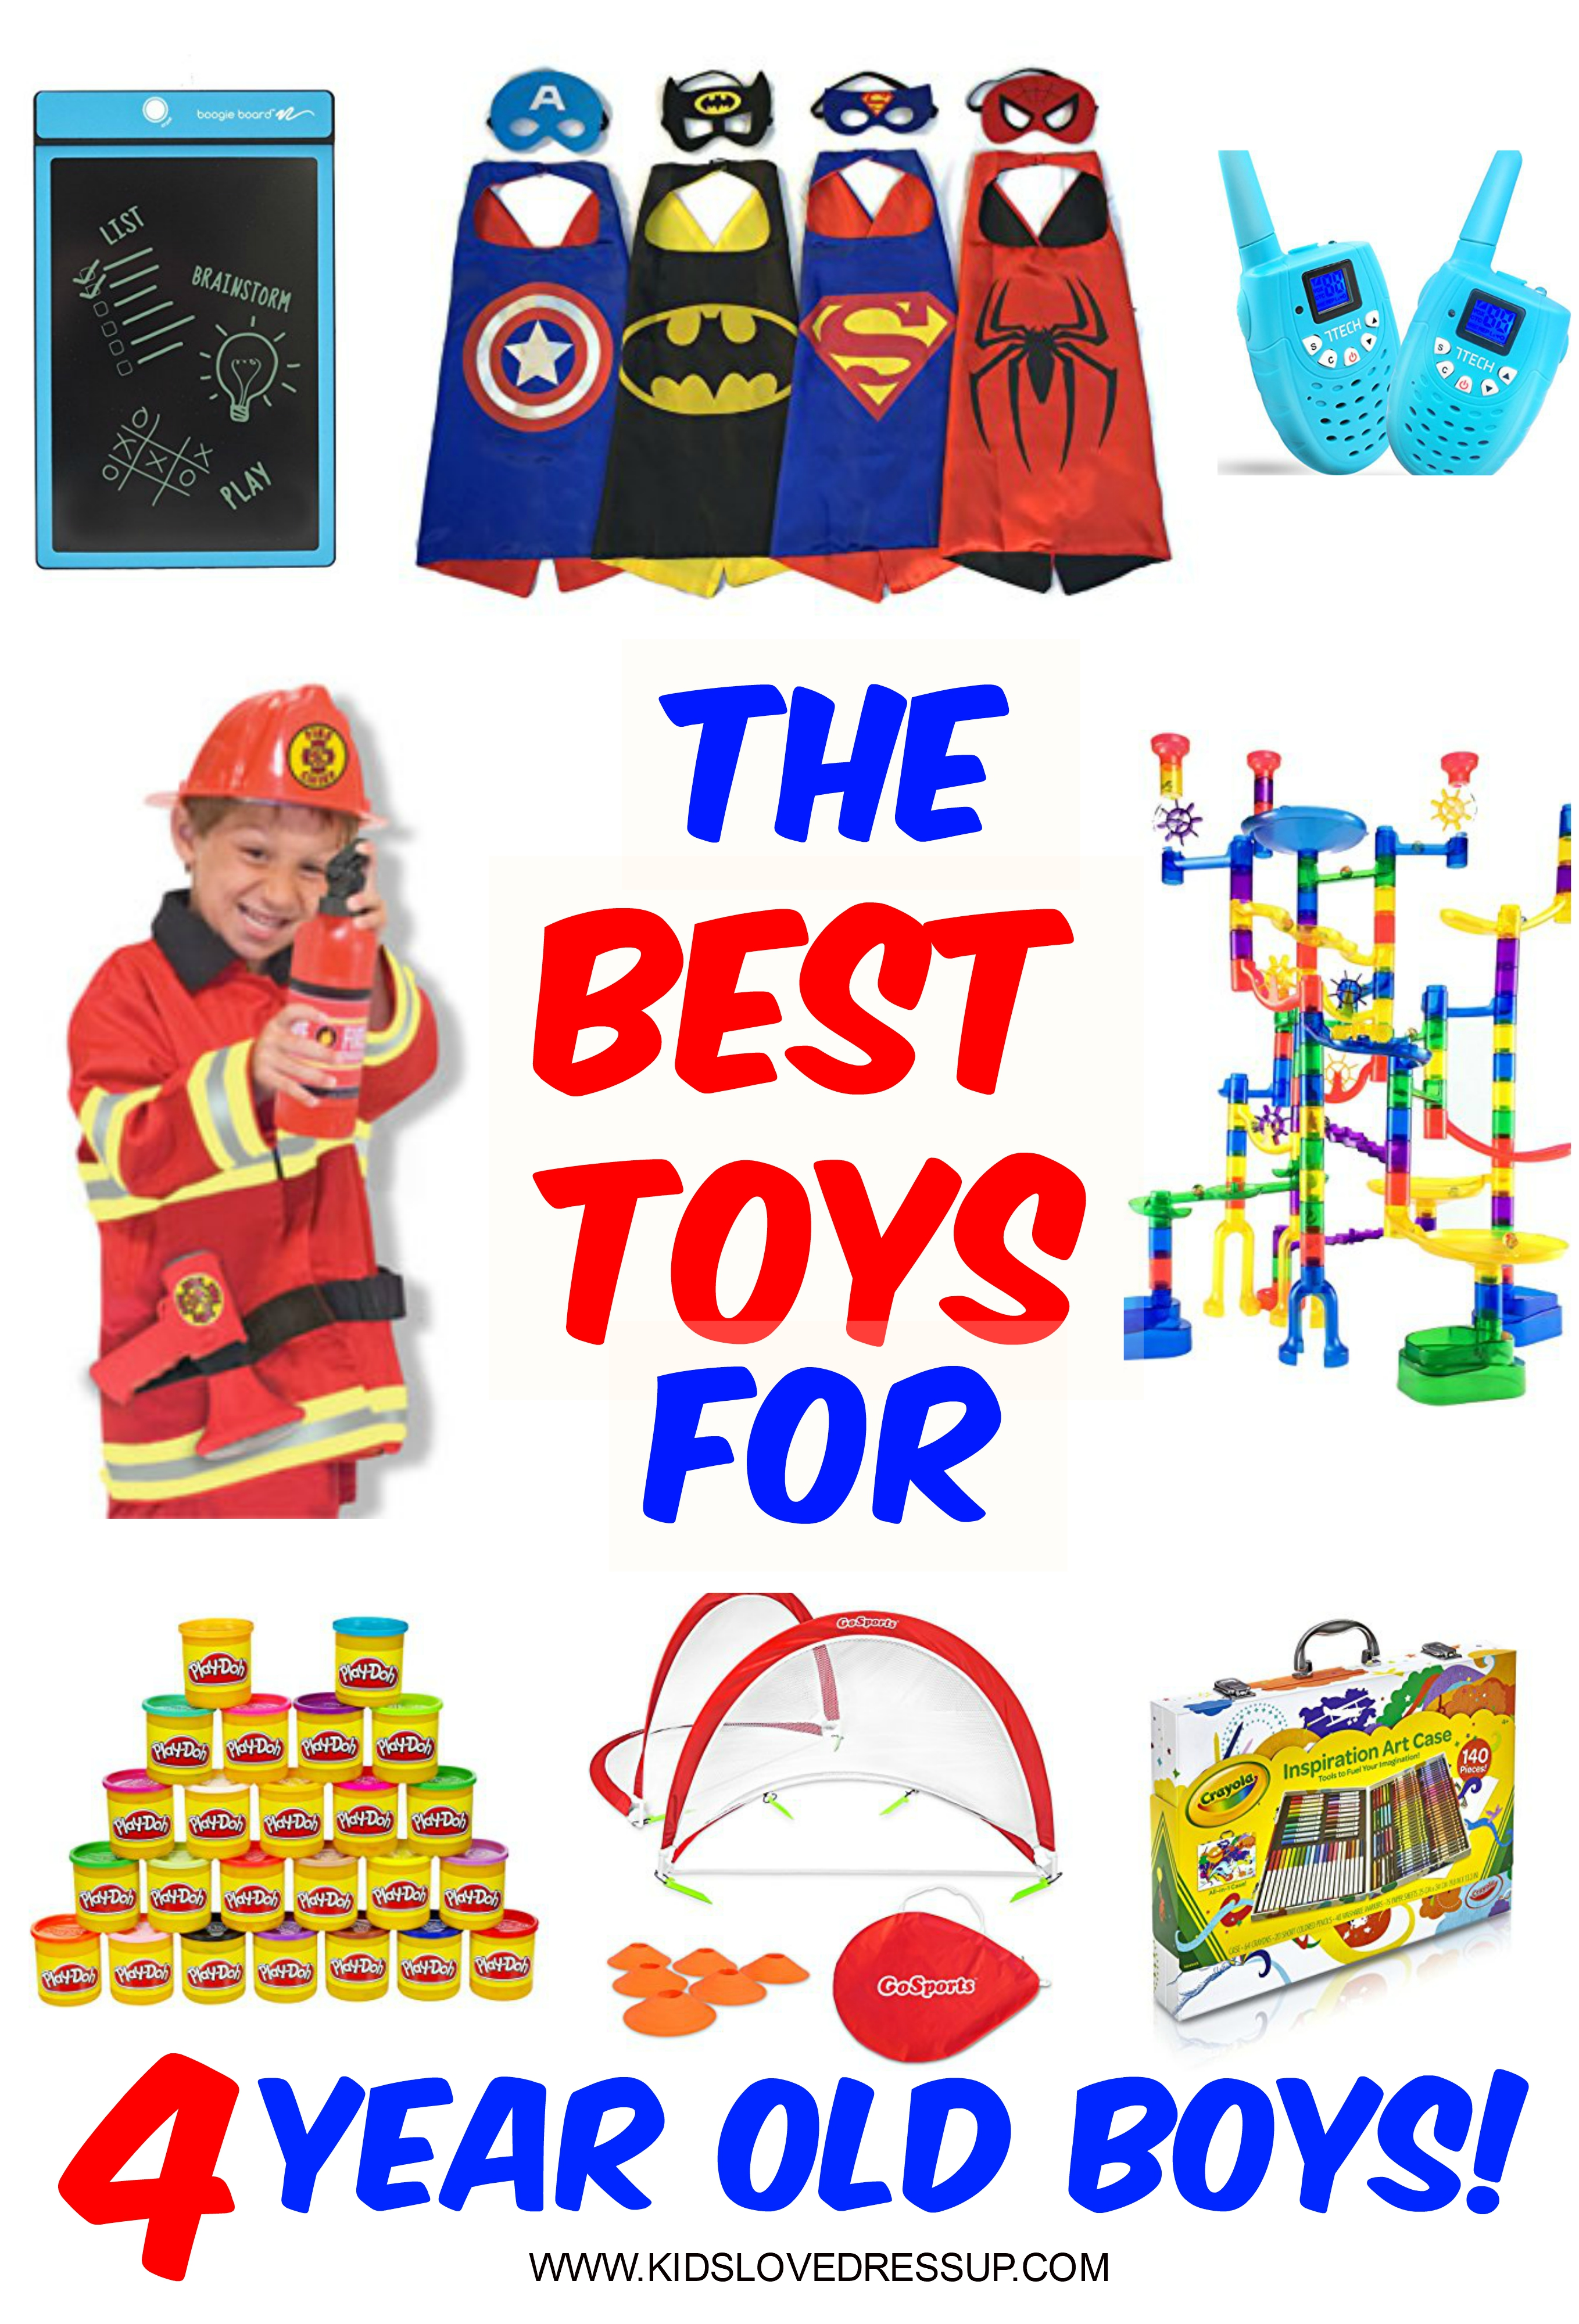 Toys For 4 And Up : Kids love dress up the one stop fun site